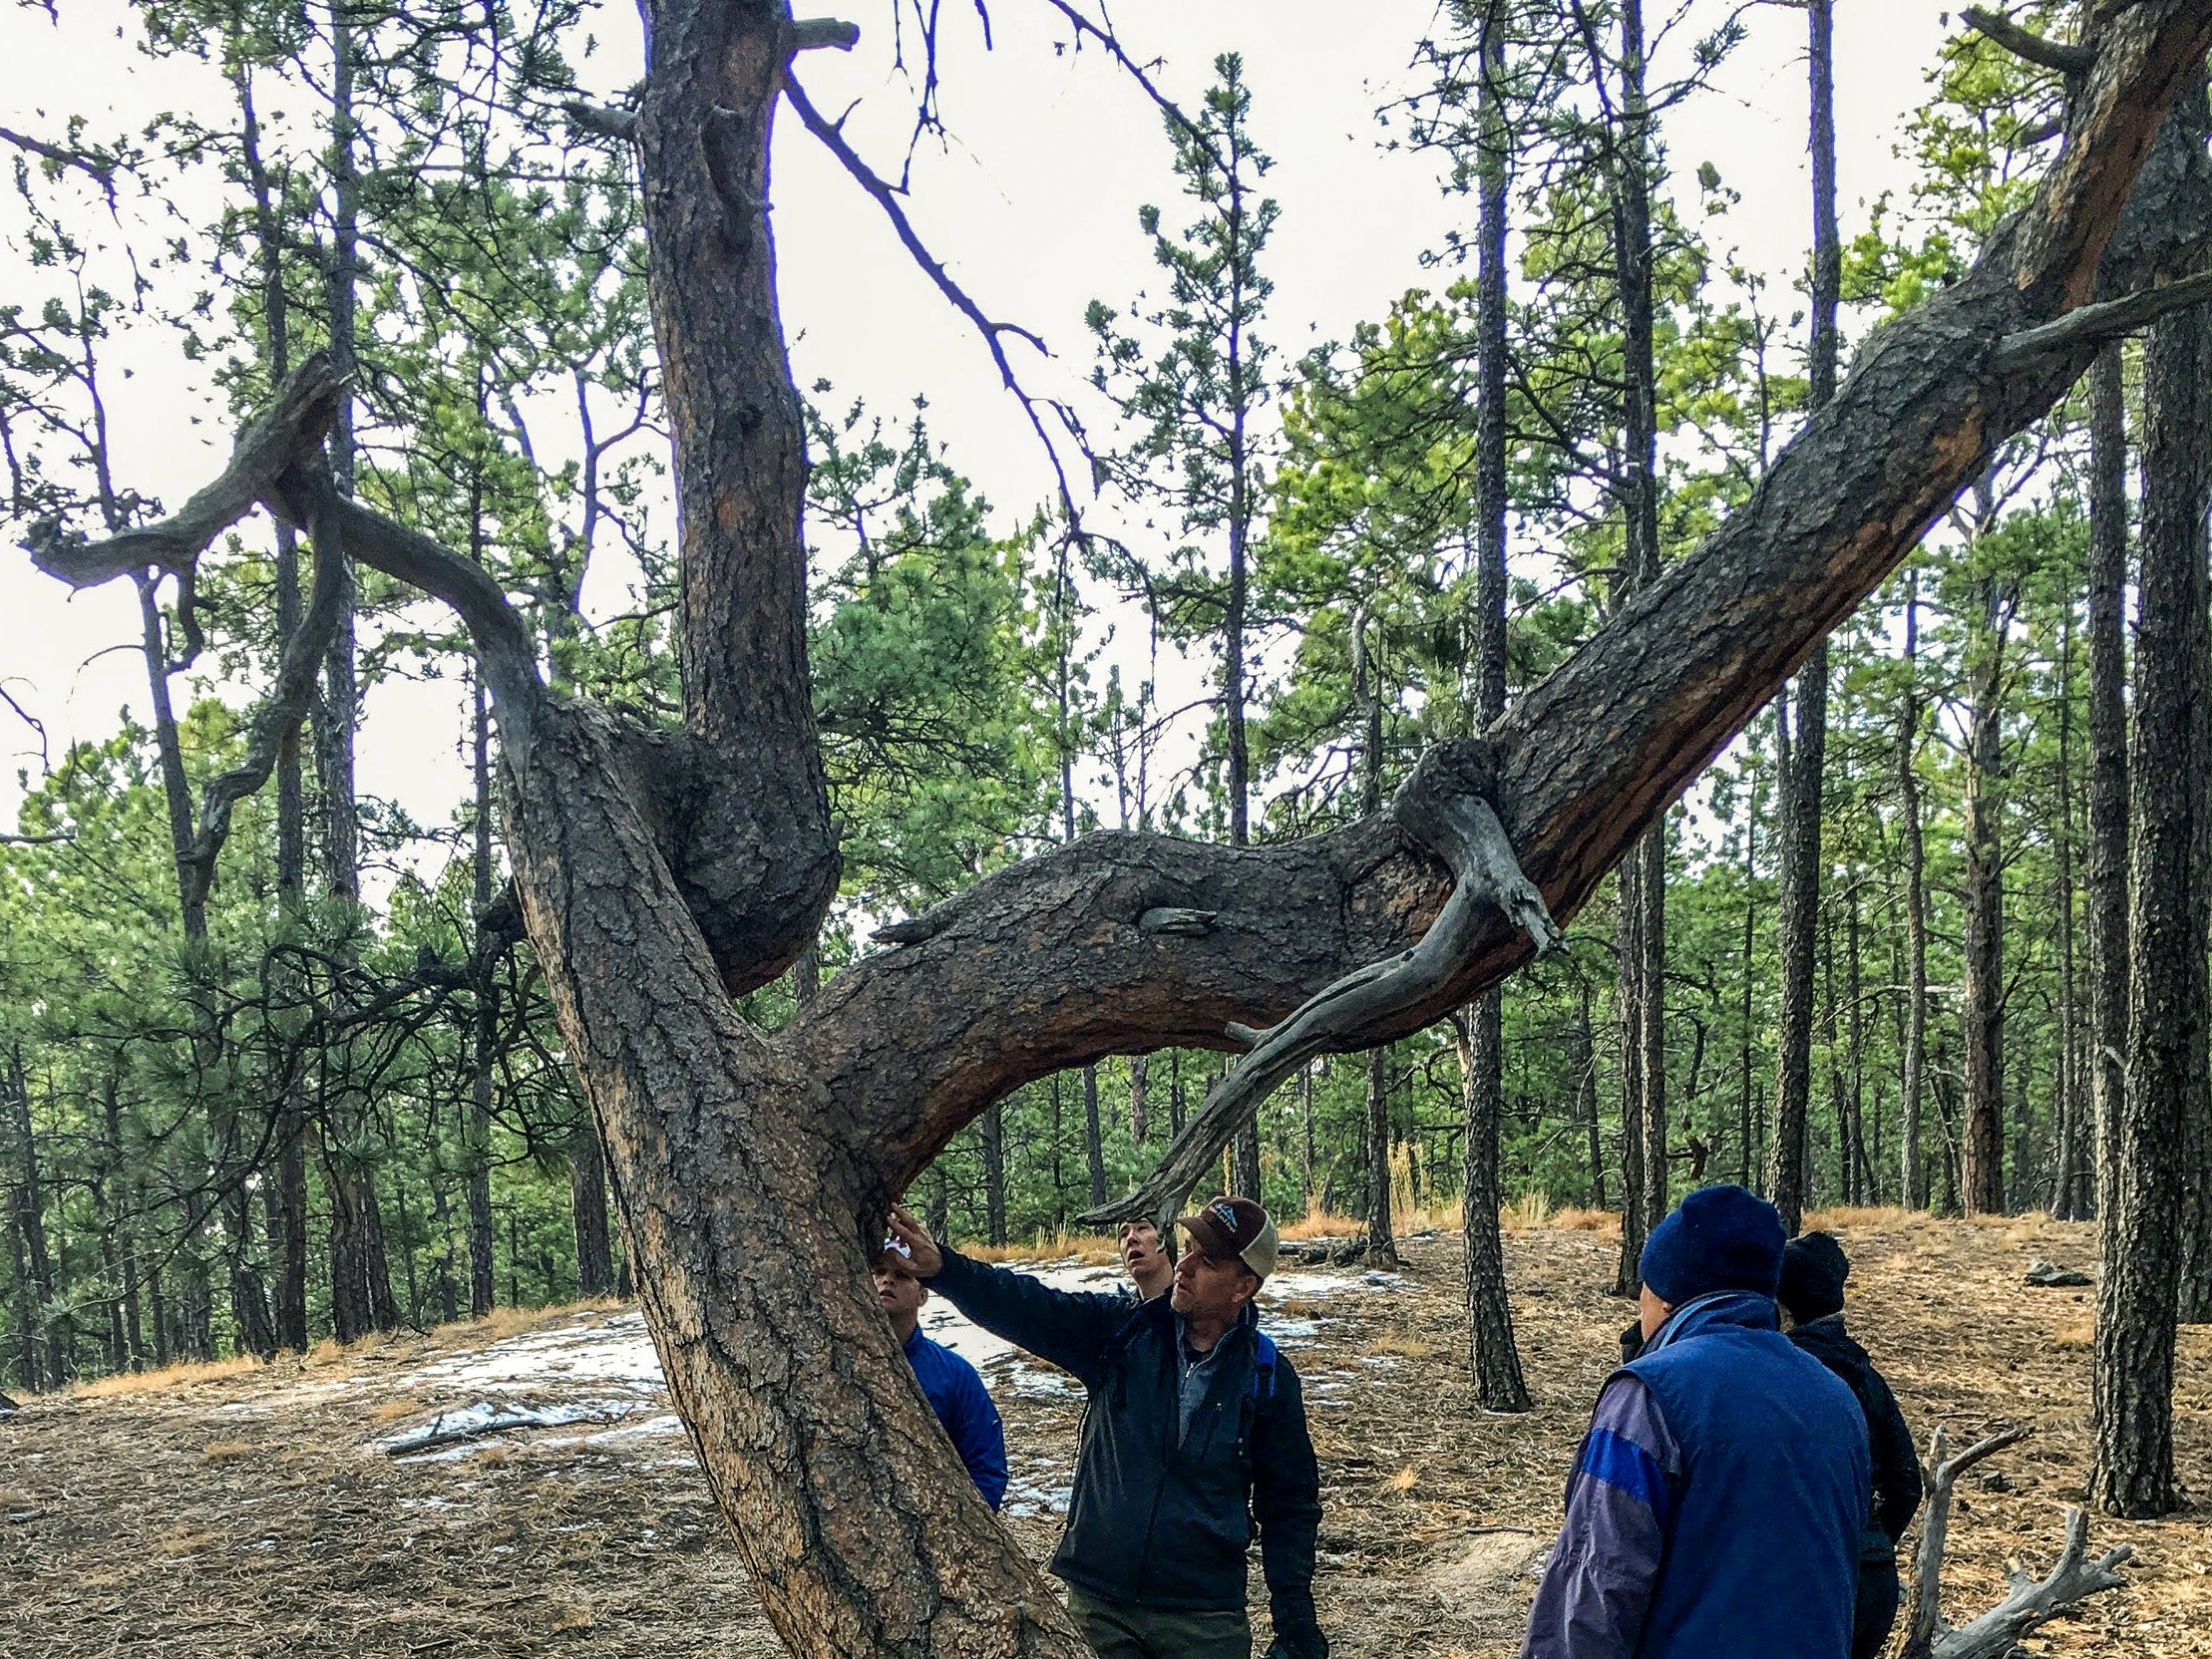 Twisted Trees Trail - Difficulty: EasyTime: 2 HoursDistance: 1 - 3 MilesPrice: $39